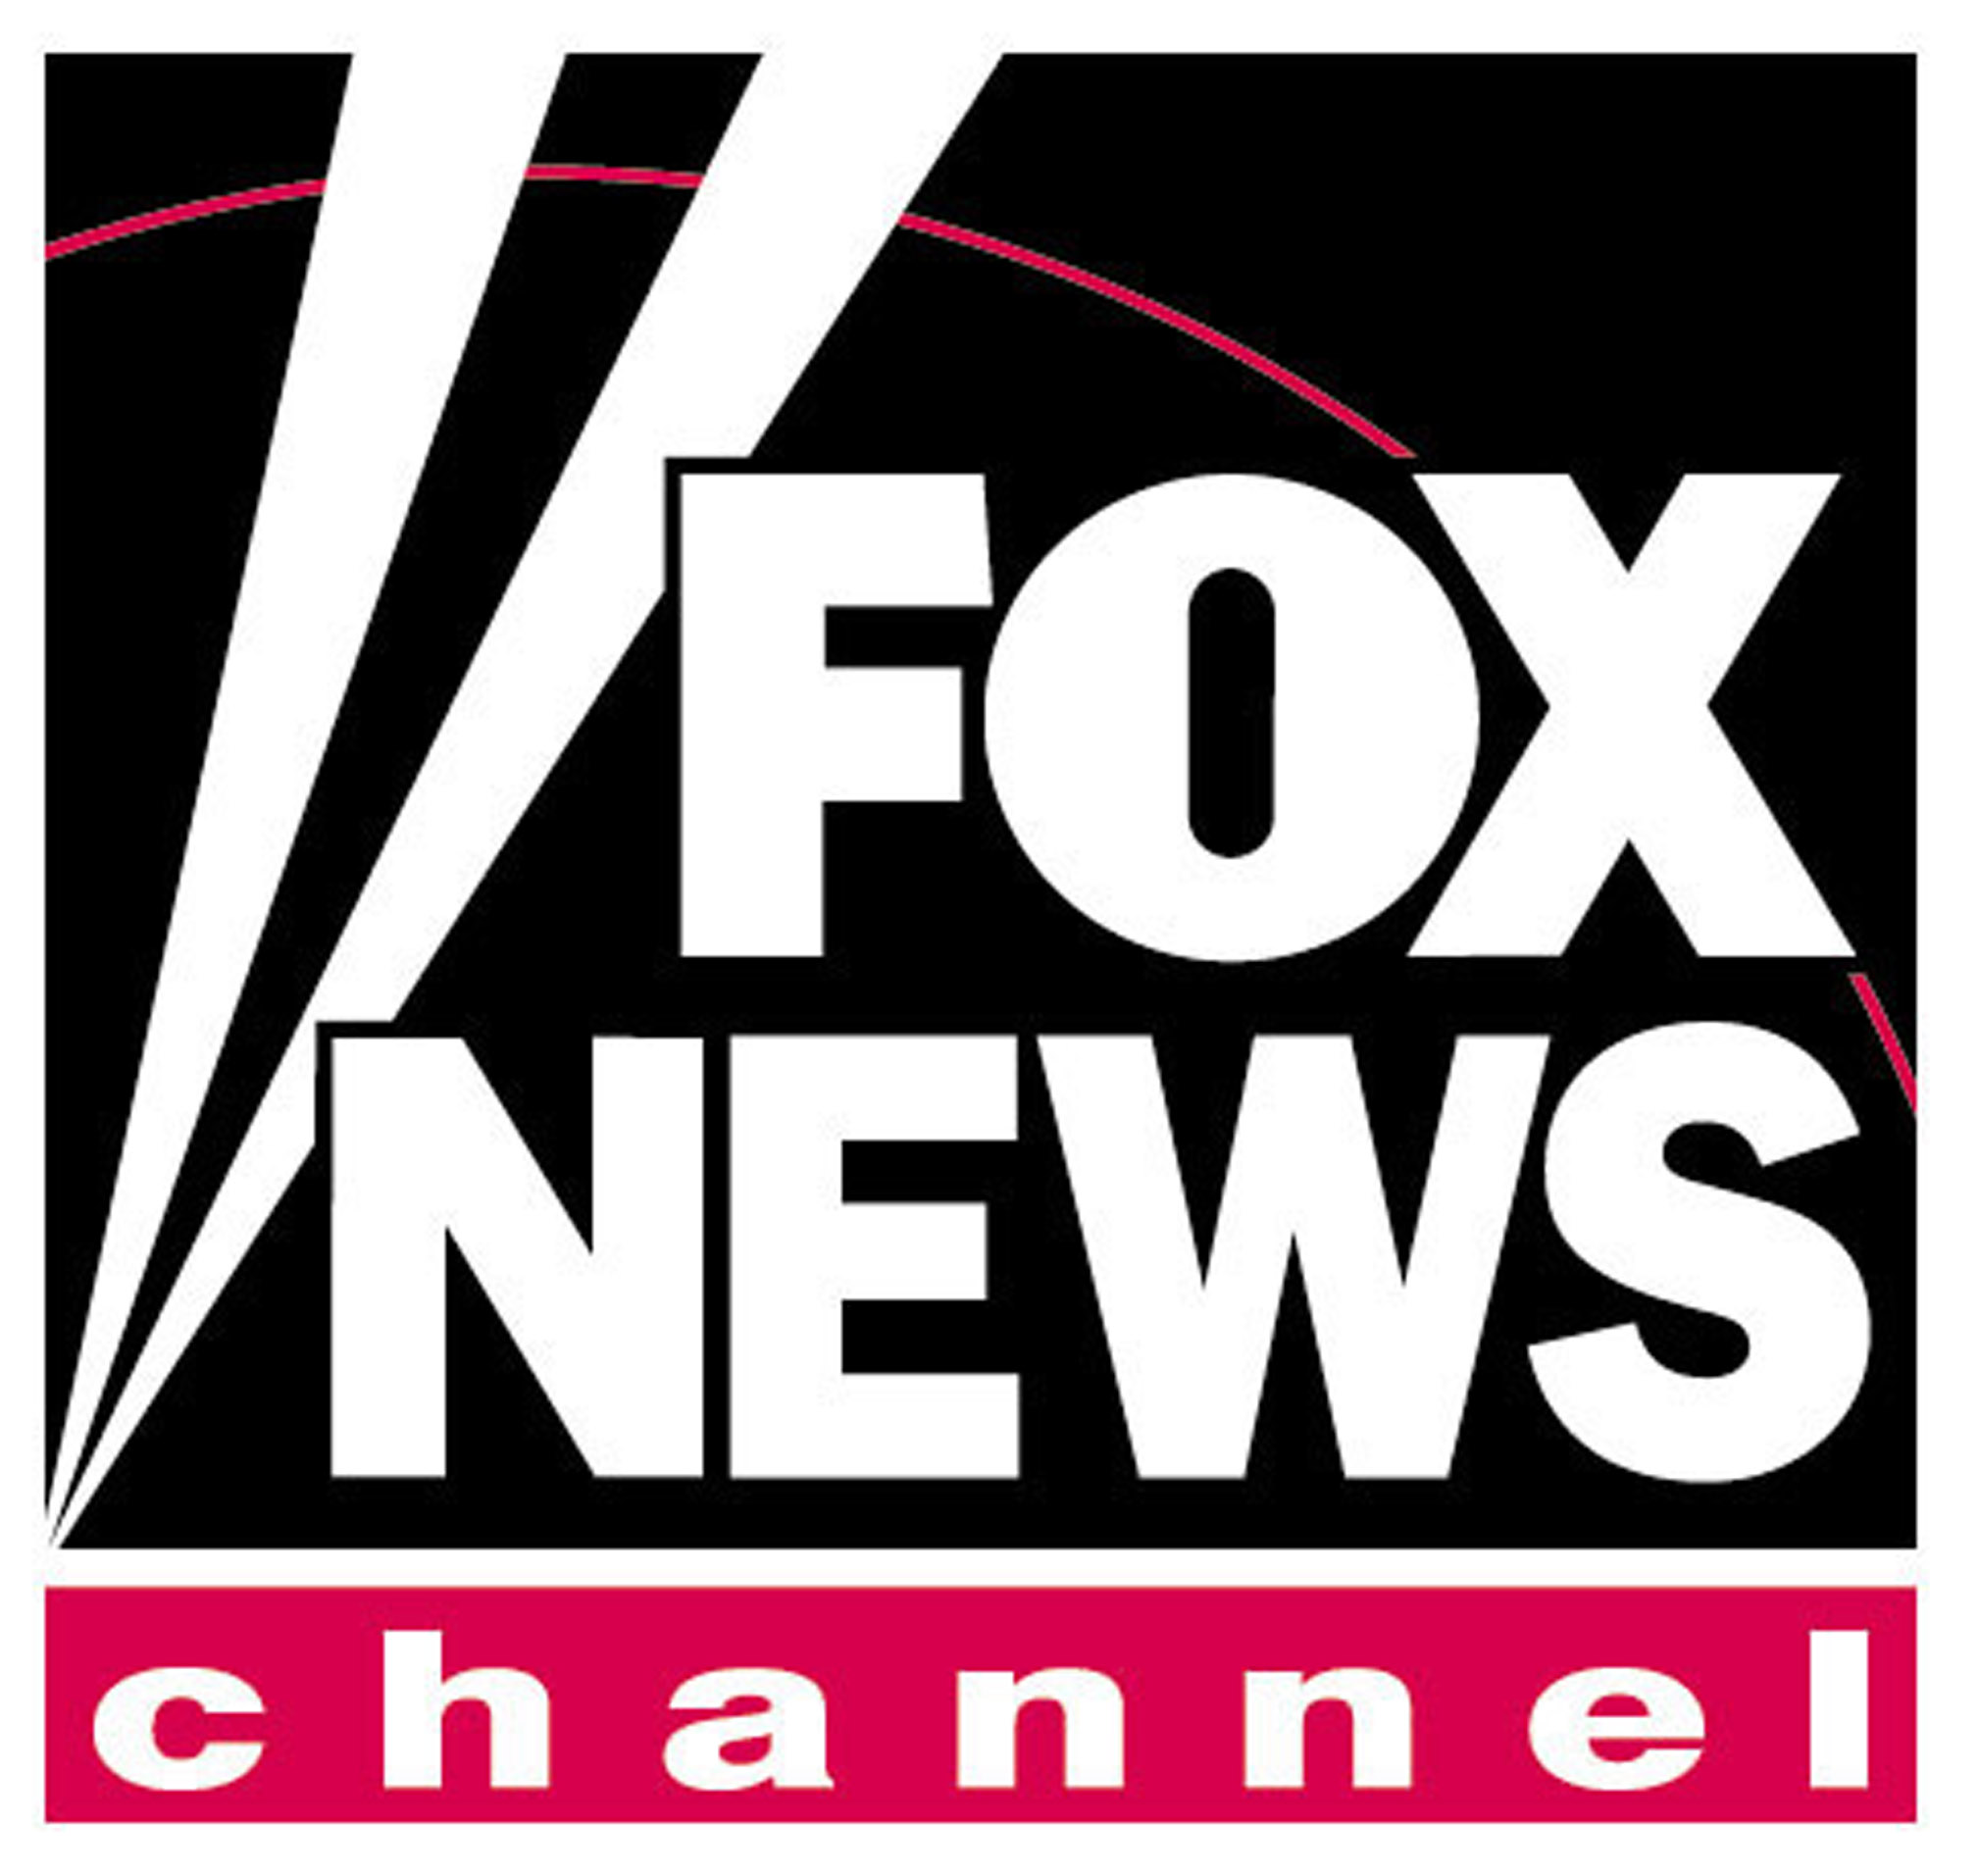 Library of fox news channel logo image black and white.